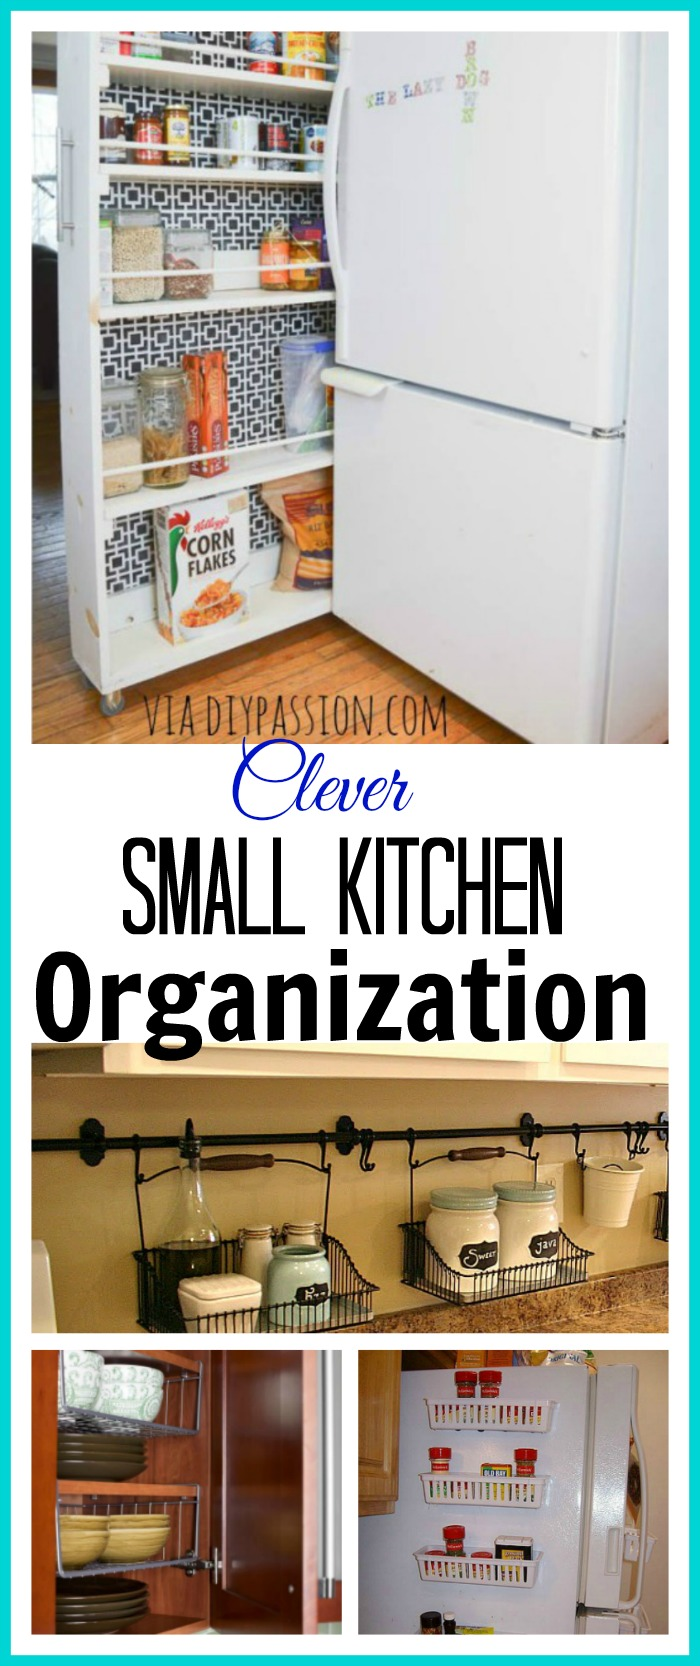 kitchen organization ideas small spaces closet 10 ideas for organizing small kitchen even if you have tiny kitchen cultivated nest